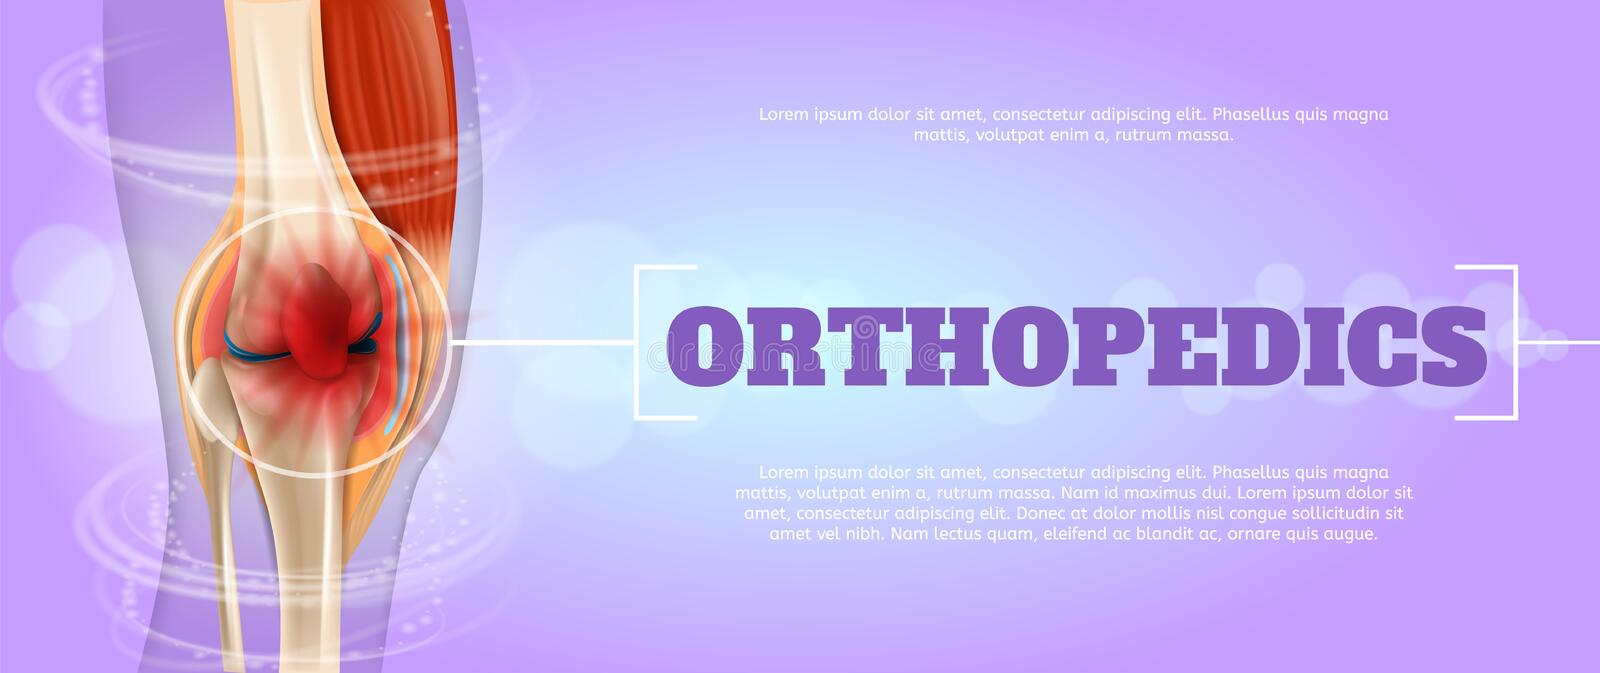 Realistic Illustration Orthopedics Medicine in 3d vector illustration